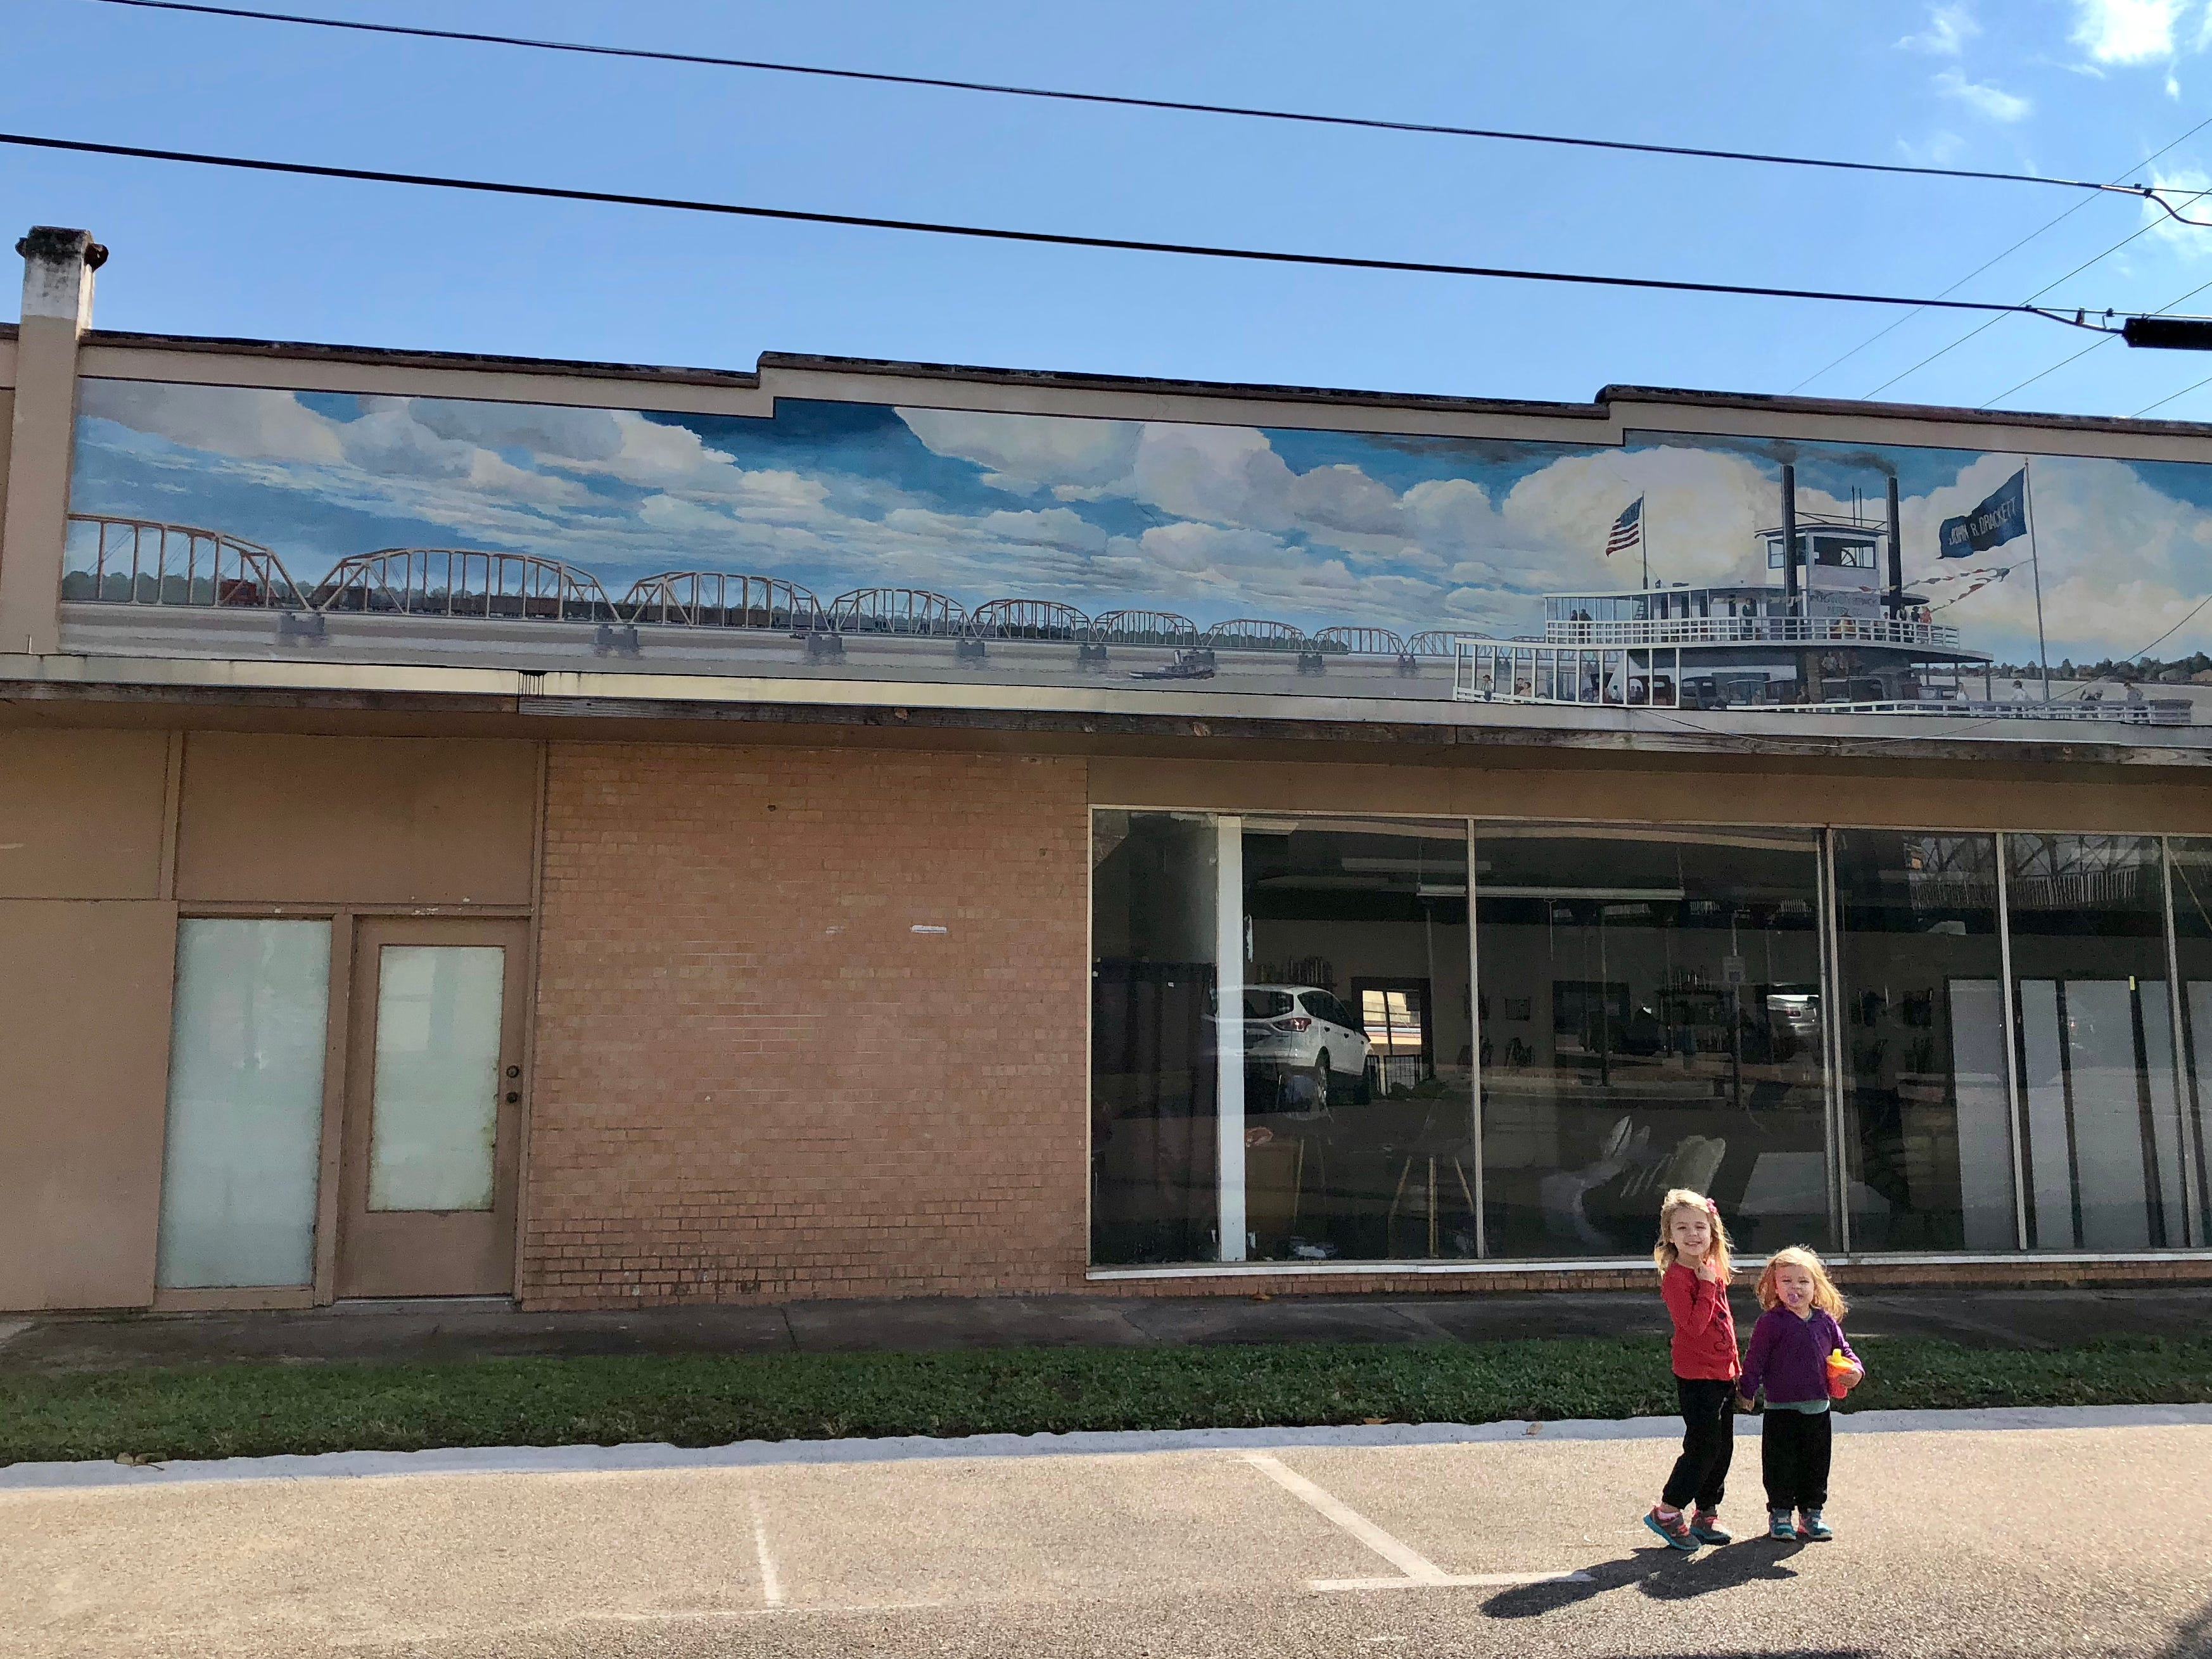 Avery and Marie Guidry pose for a photo in front of a mural in historic downtown Morgan City as their family tours the Bayou Teche Byway.